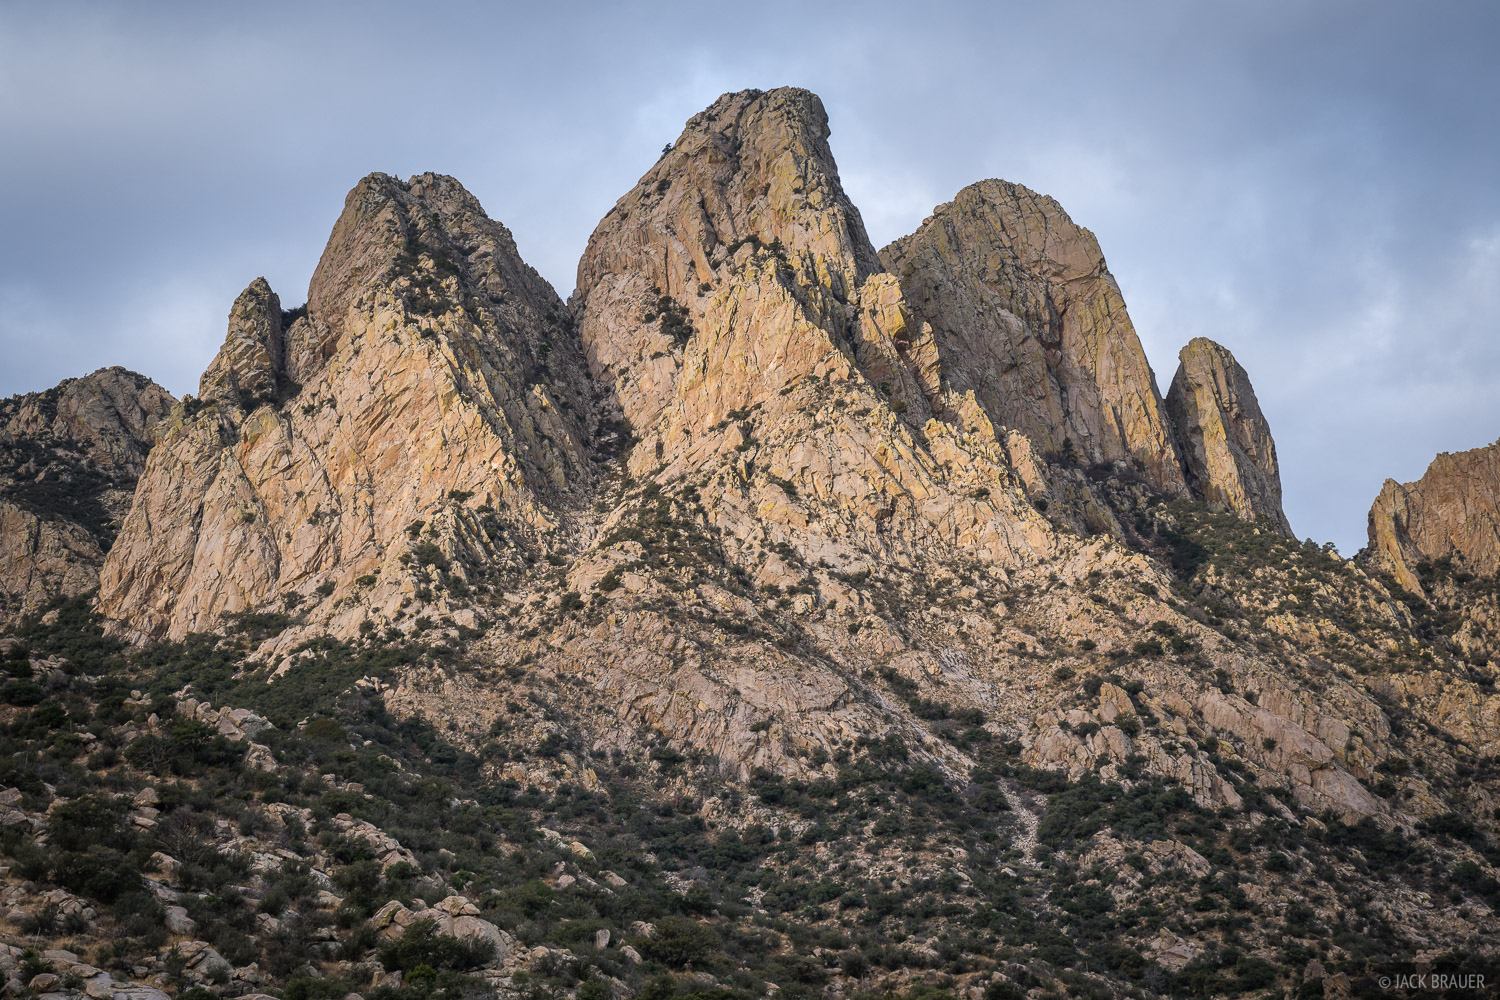 New Mexico, Organ Mountains-Desert Peaks National Monument, Aguirre Spring Campground, photo